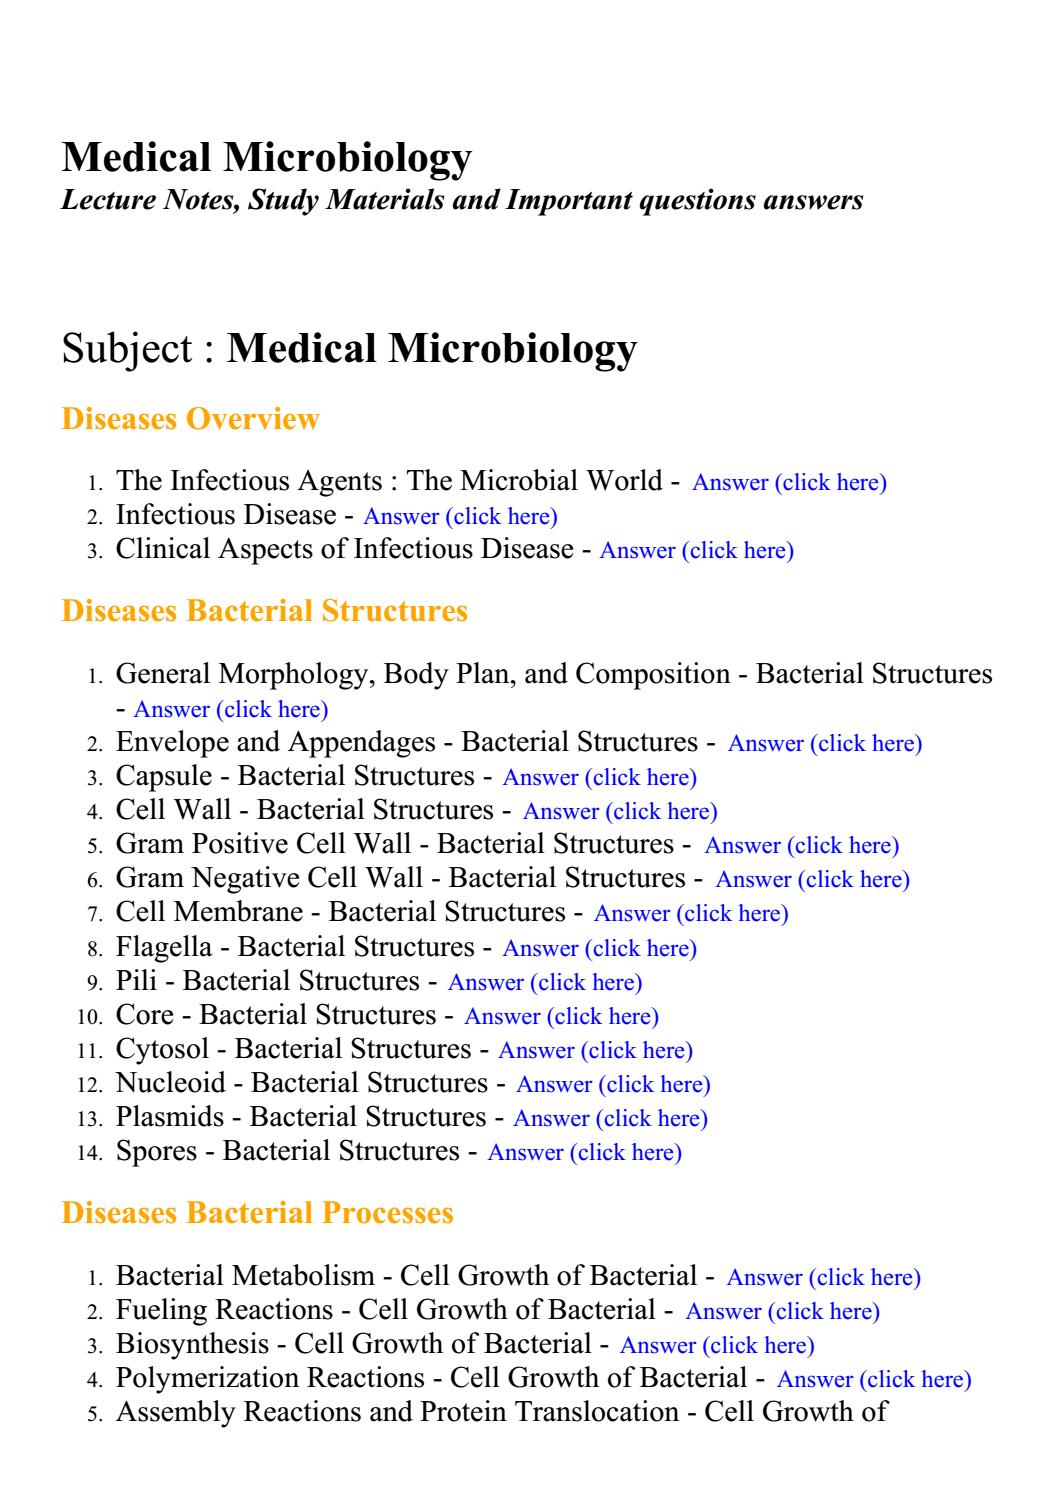 Medical microbiology - Lecture Notes, Study Materials and